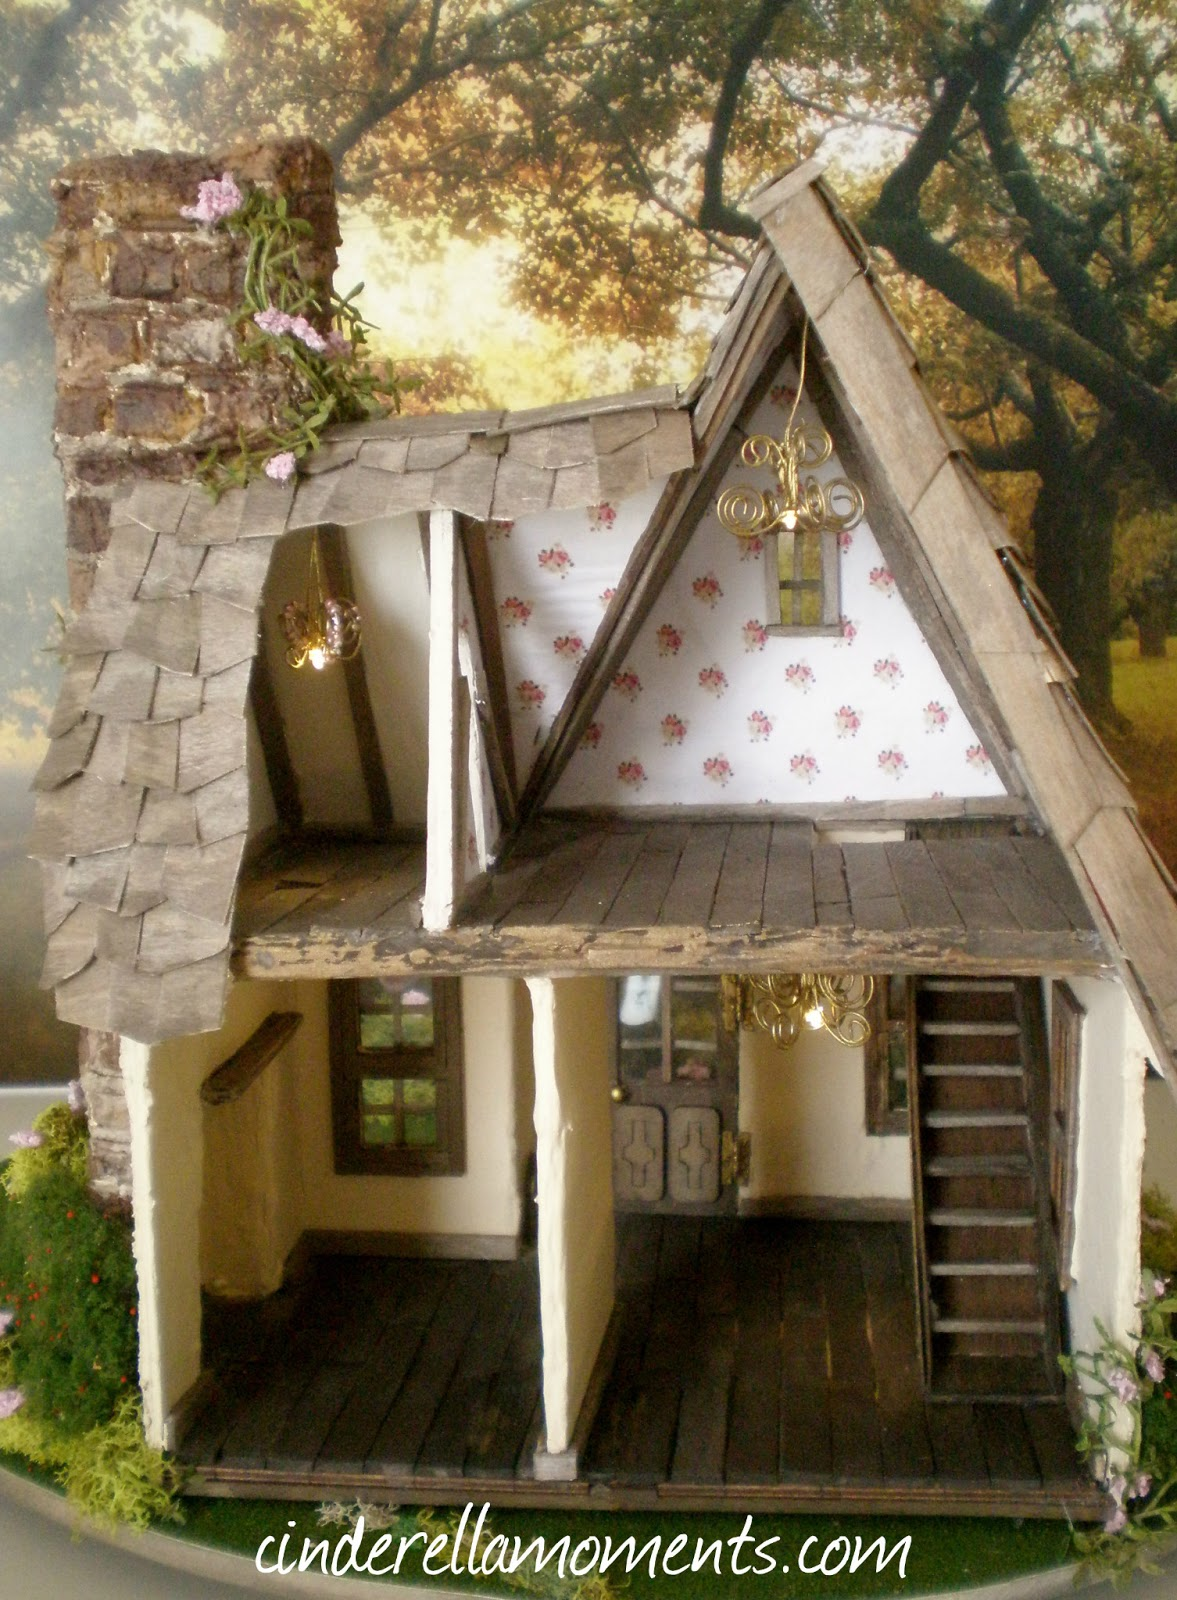 Cinderella Moments Miss Read S English Cottage